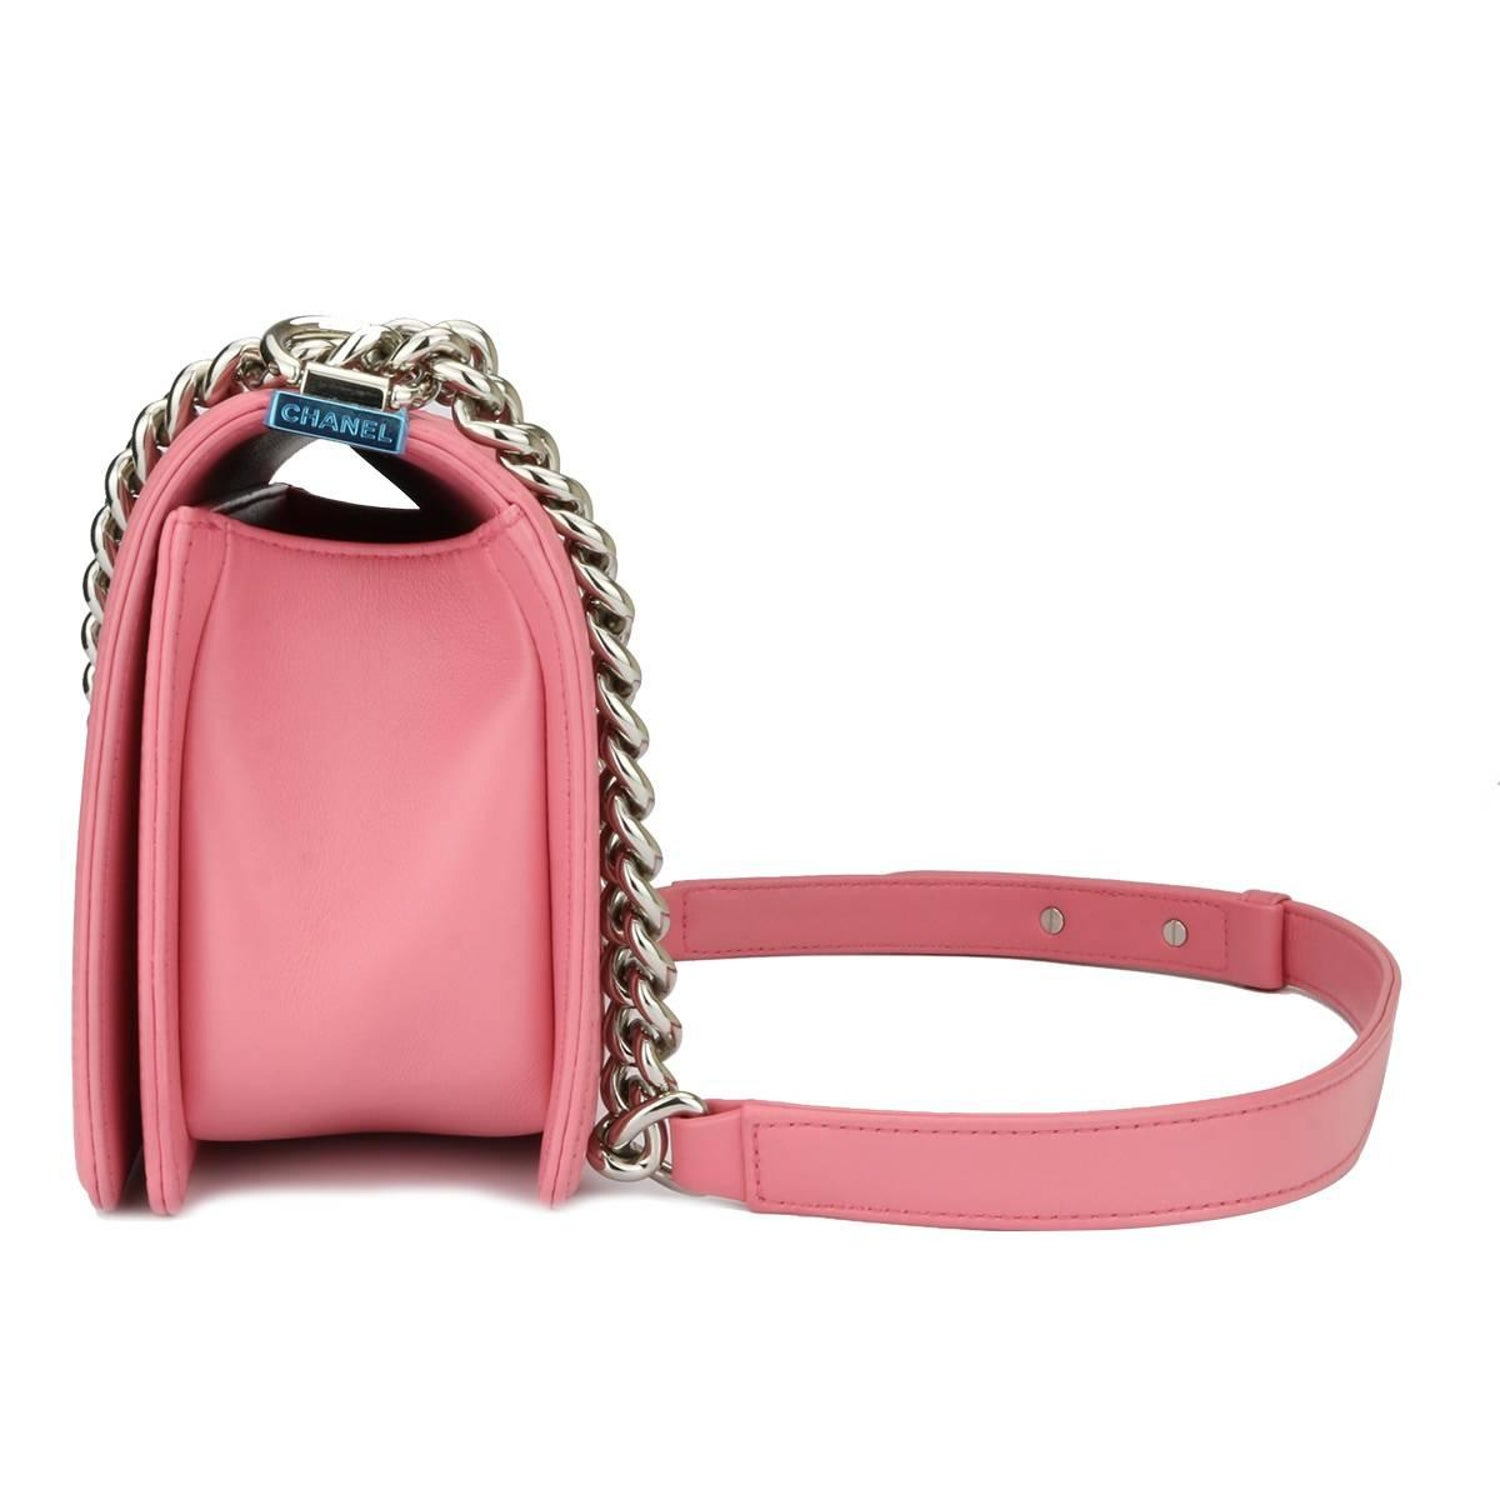 282ab099b74a Chanel Old Medium Chevron Boy Pink Calfskin with Shiny Silver Hardware 2016  at 1stdibs